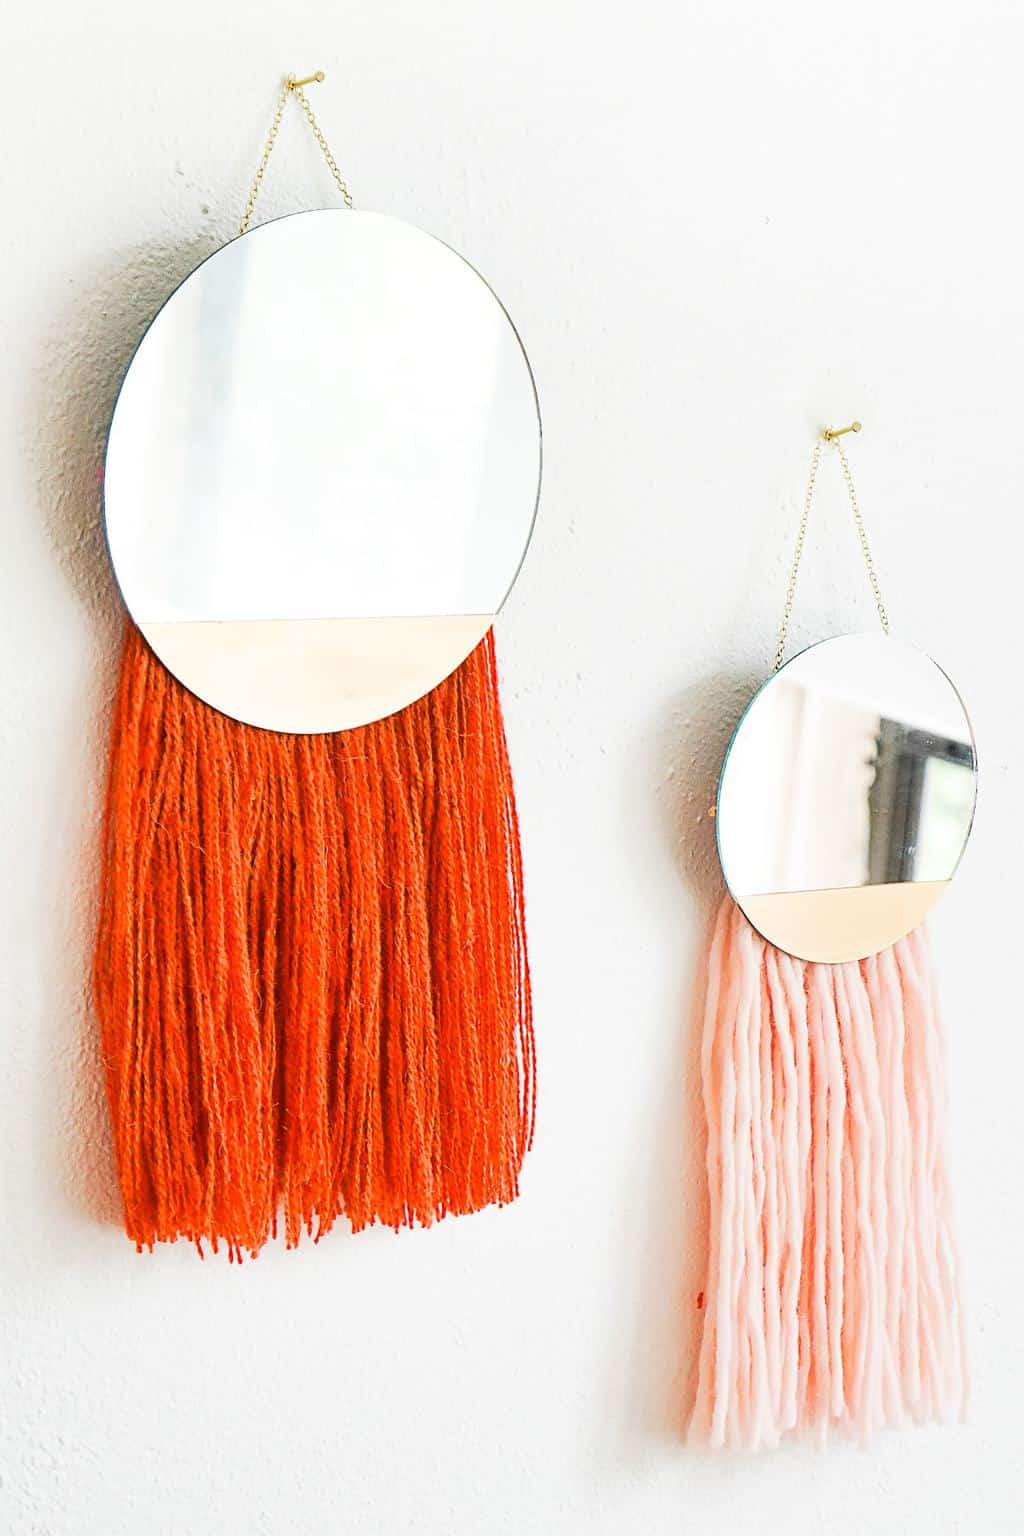 Diy Fringed Mirror Wall Hanging